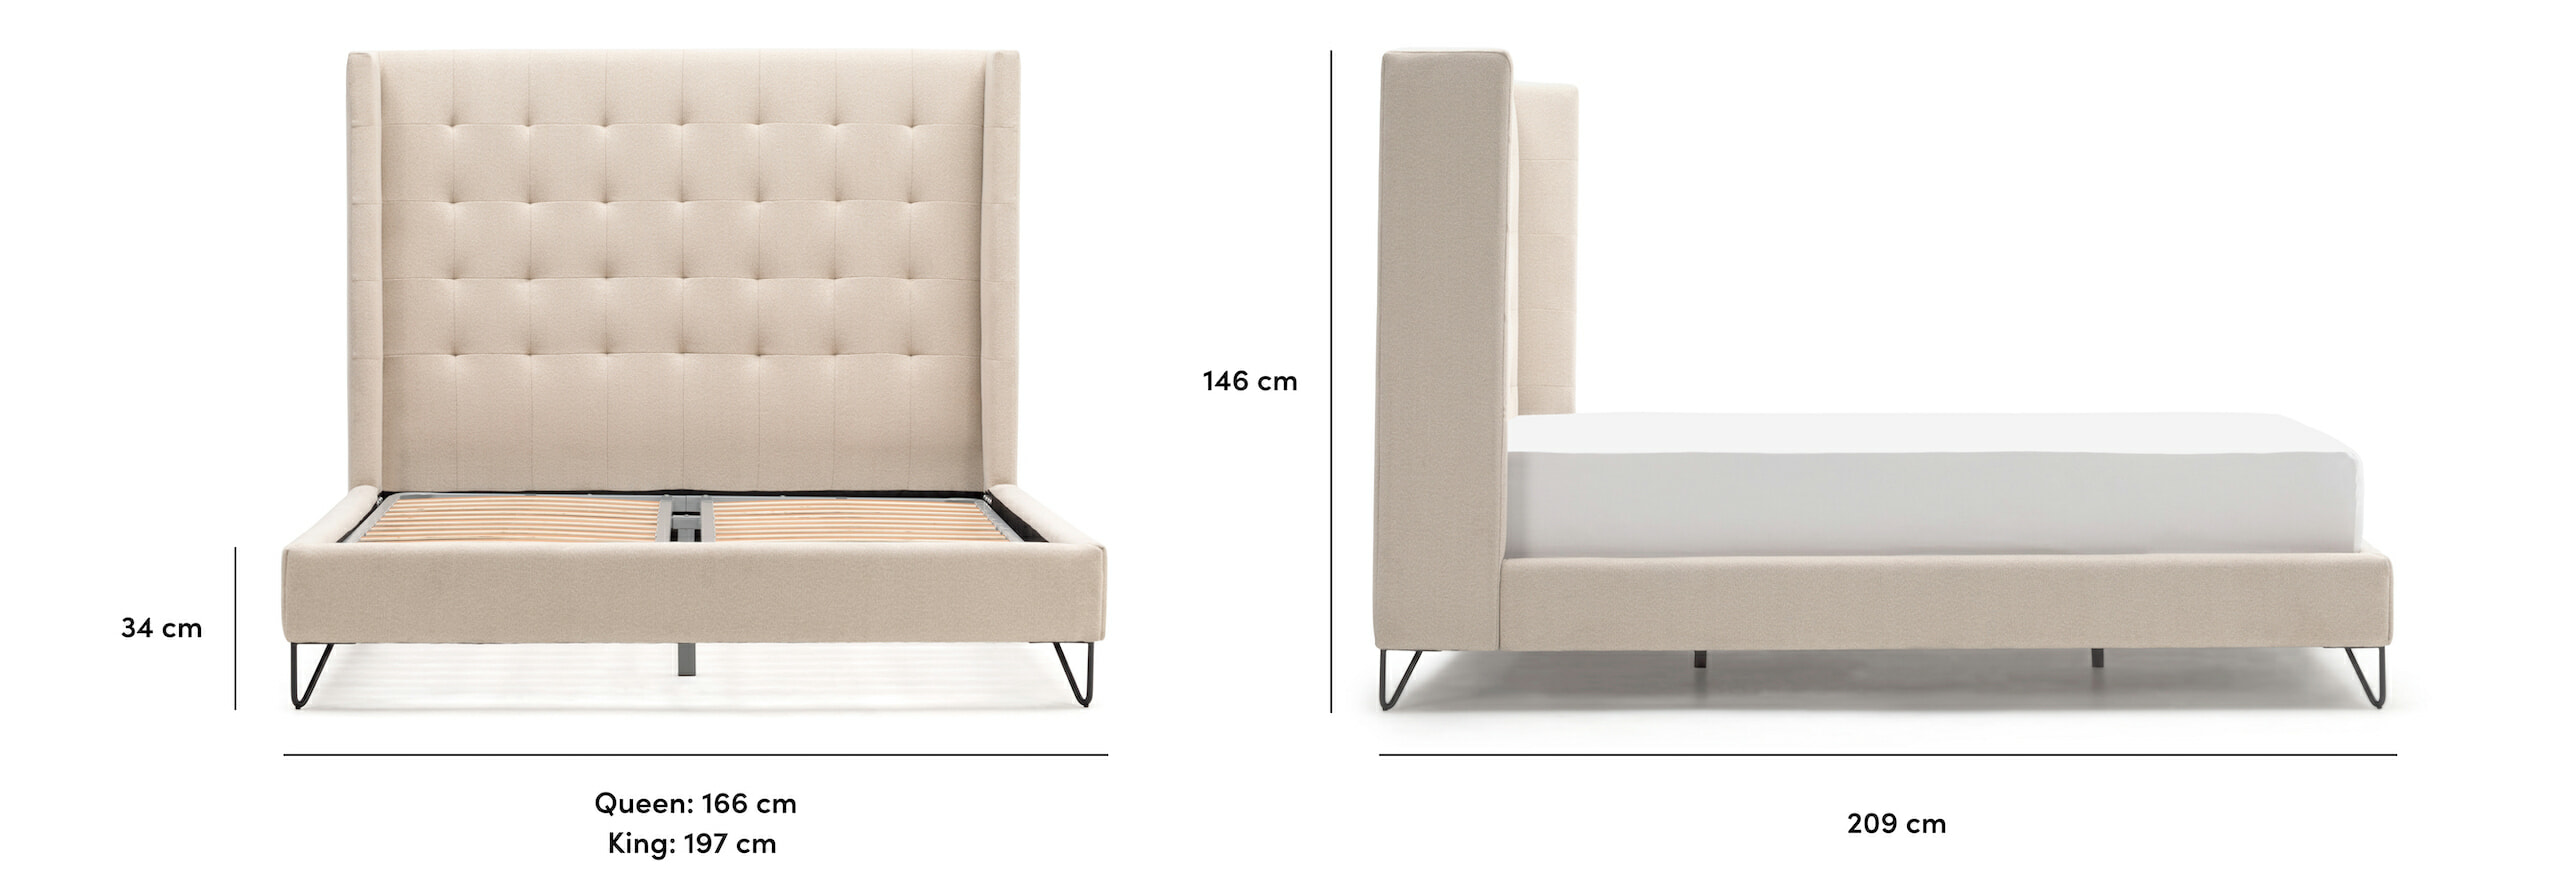 Venice bed dimensions